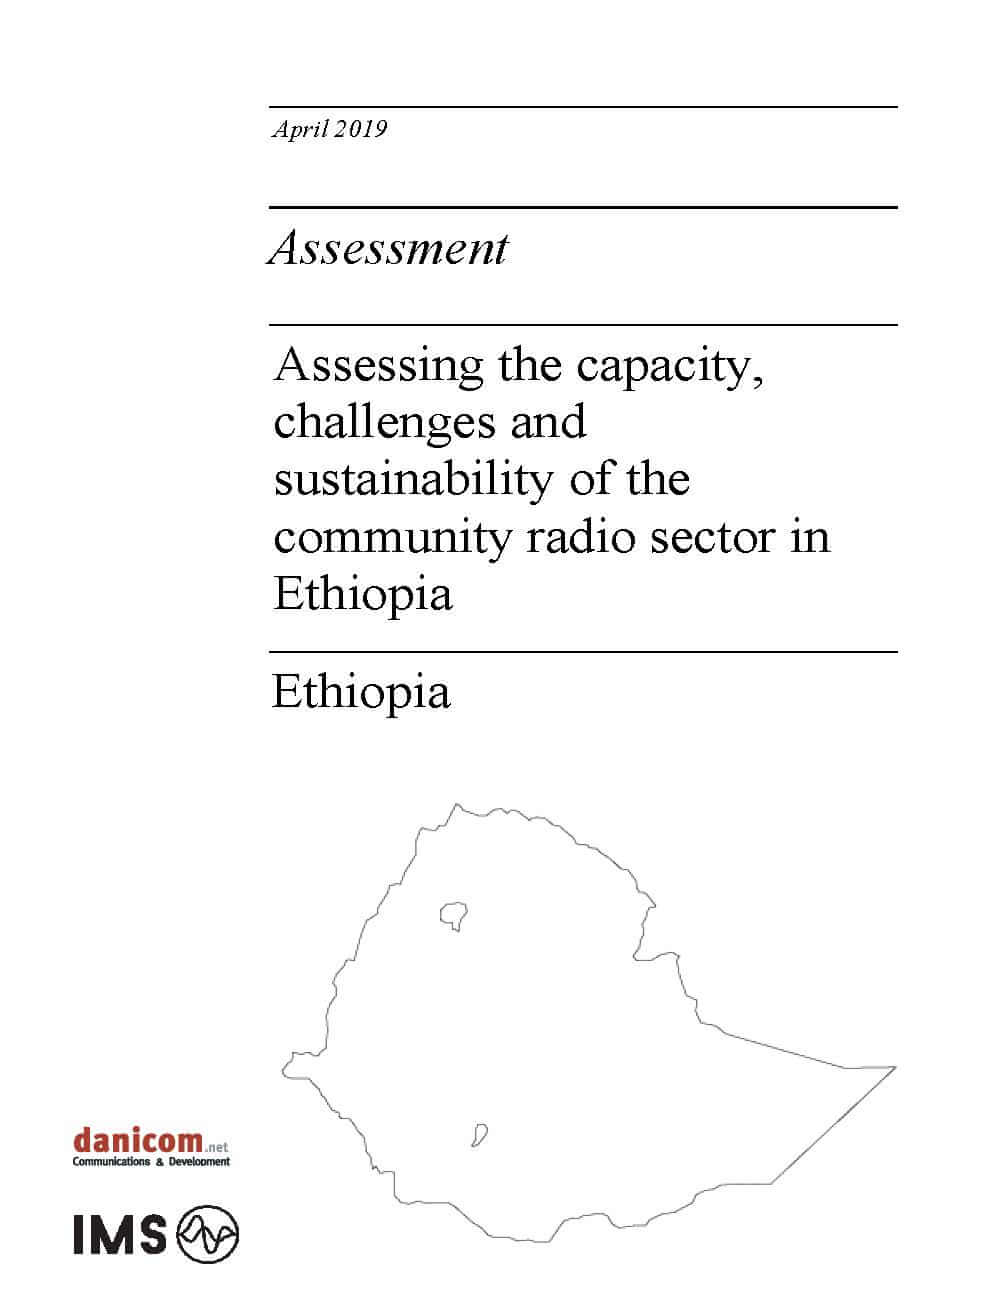 Assessing the capacity, challenges and sustainability of the community radio sector in Ethiopia